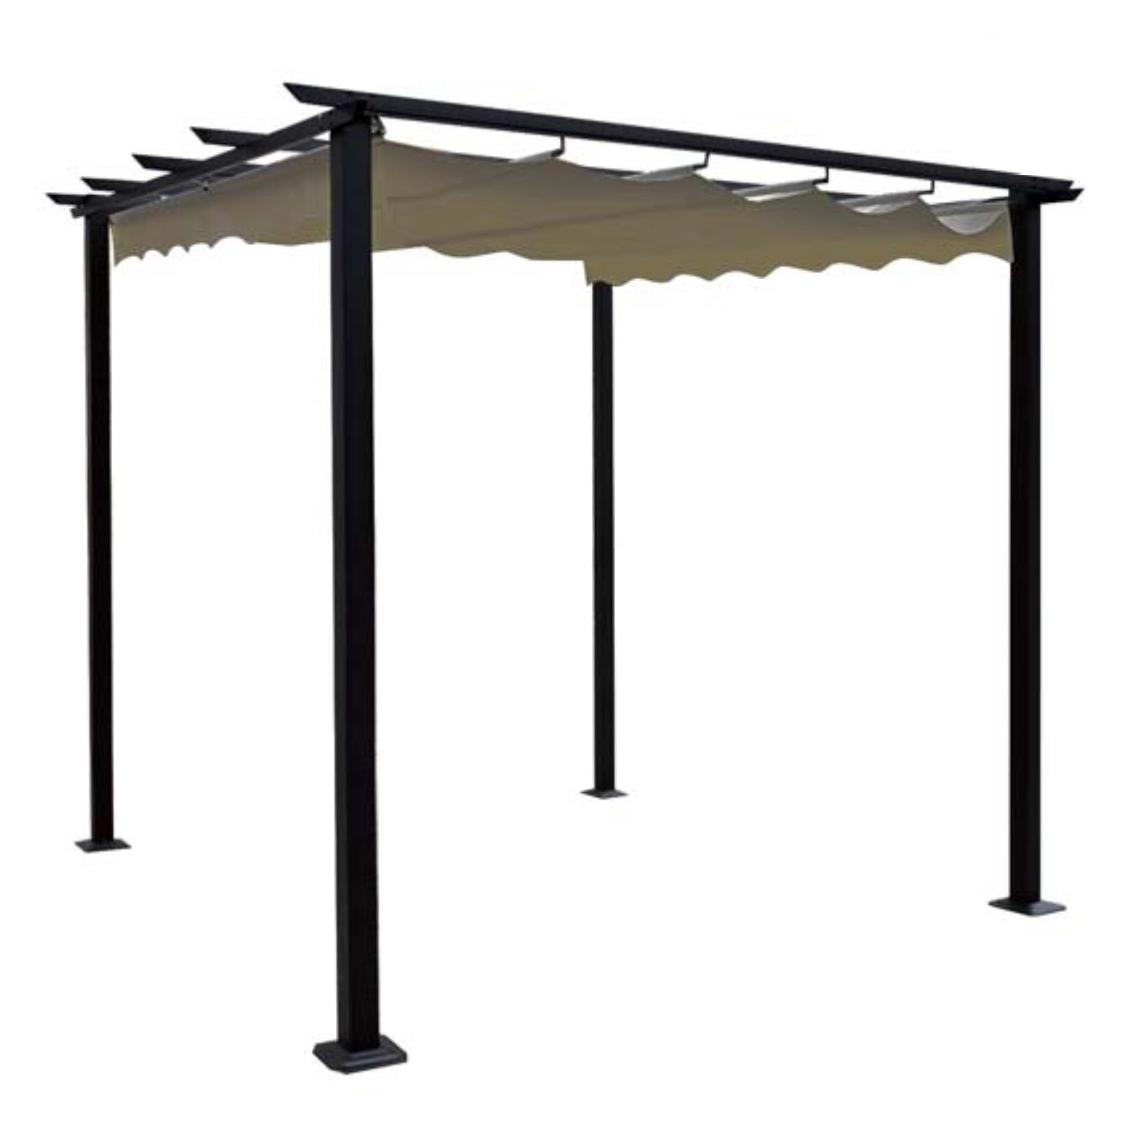 pergola 3x3 m alu anthracite fabric beige. Black Bedroom Furniture Sets. Home Design Ideas